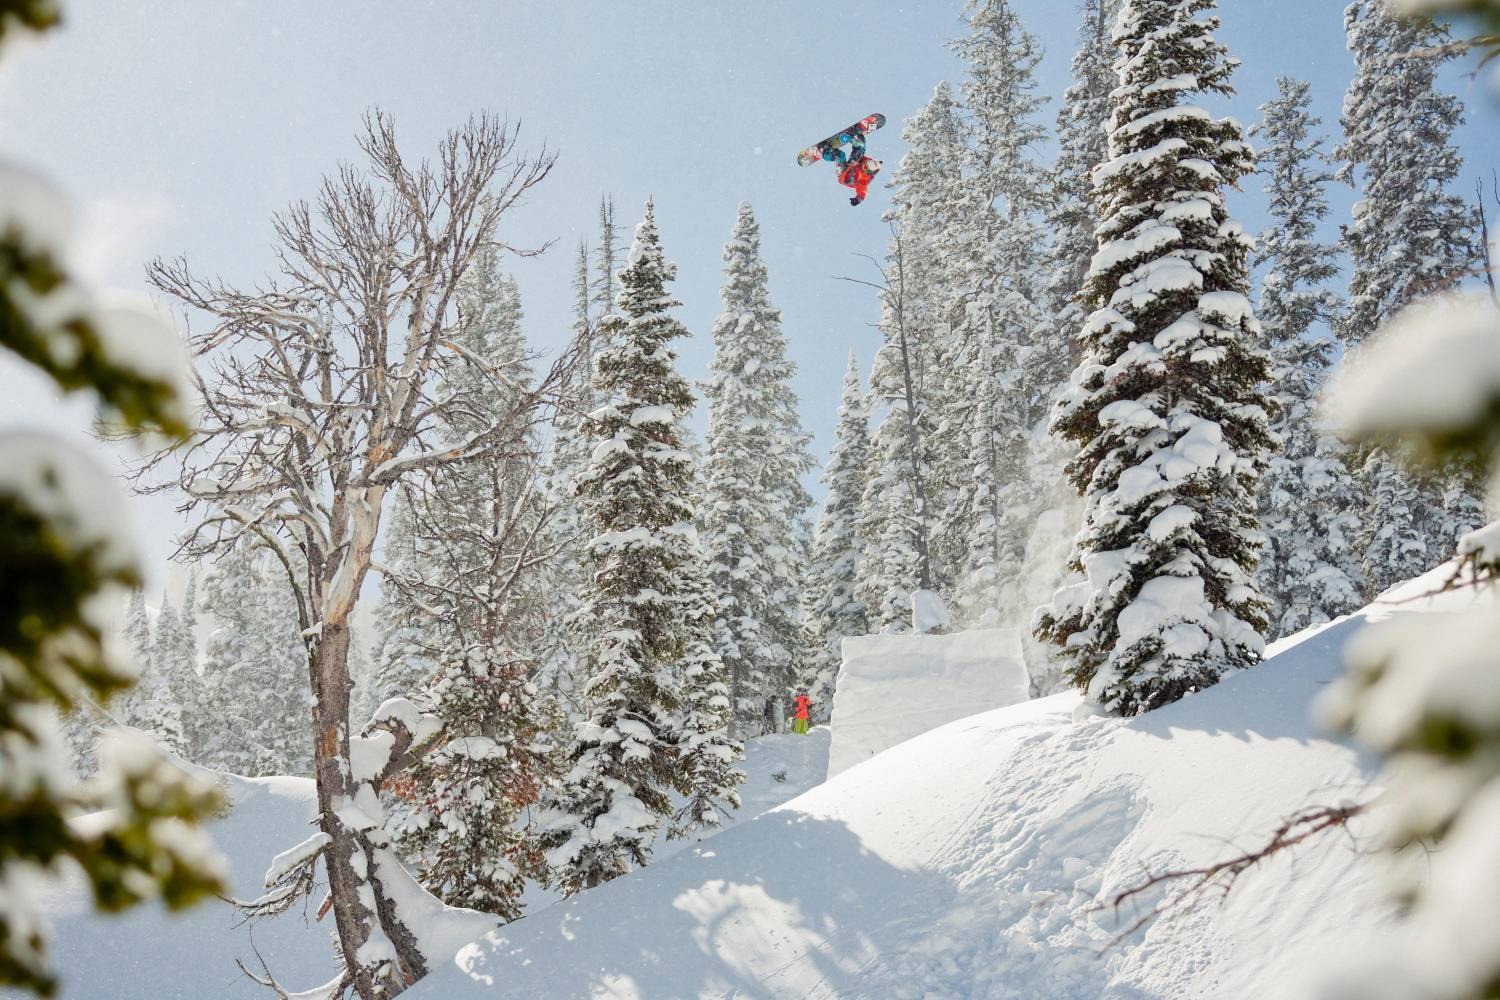 A Free Ride Porn best snowboard movies: top 10 movies on red bull tv